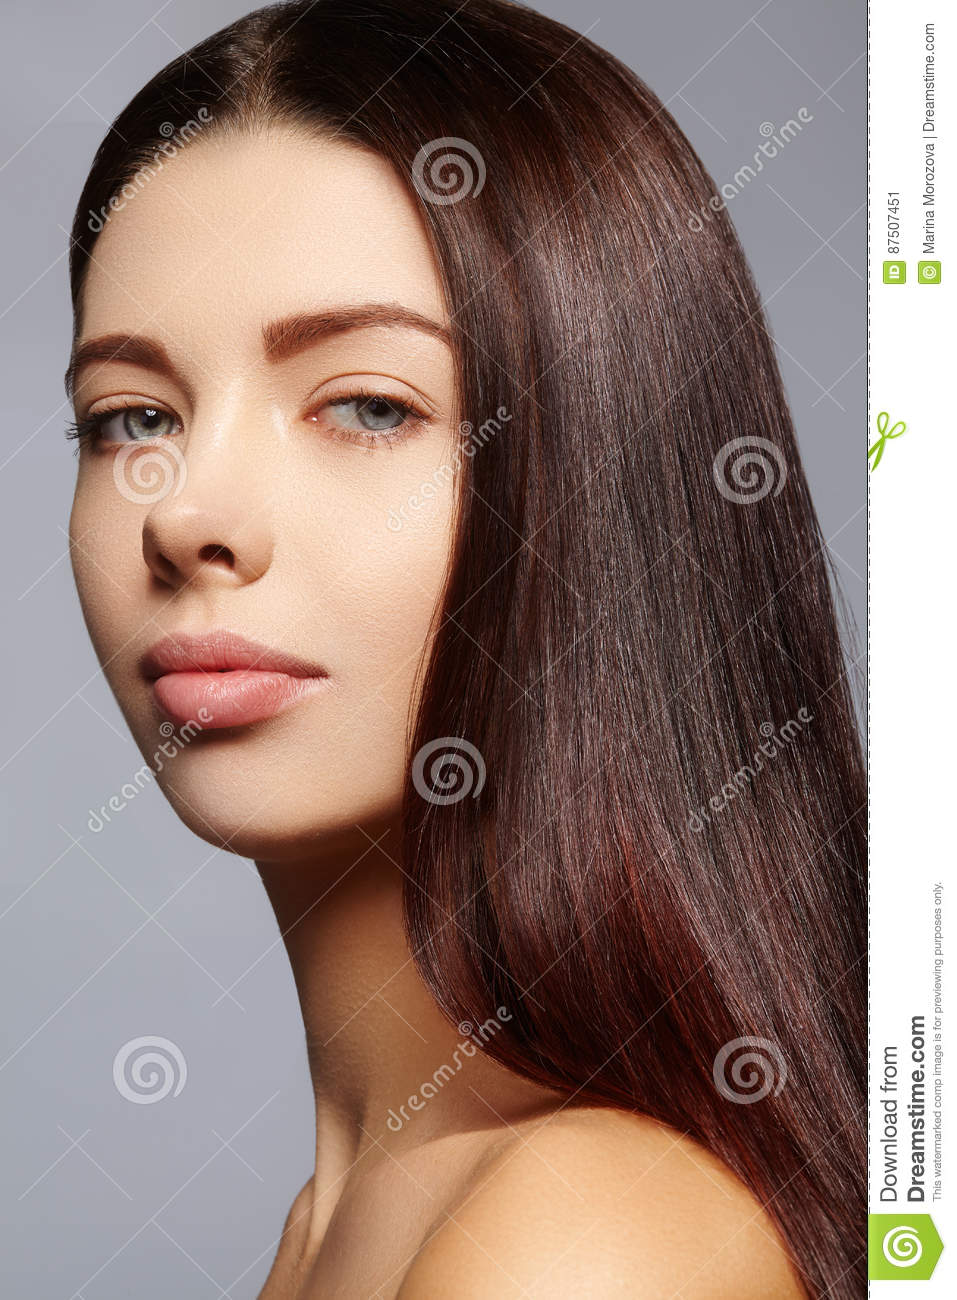 model hair style beautiful with healthy hairstyle stock image 8077